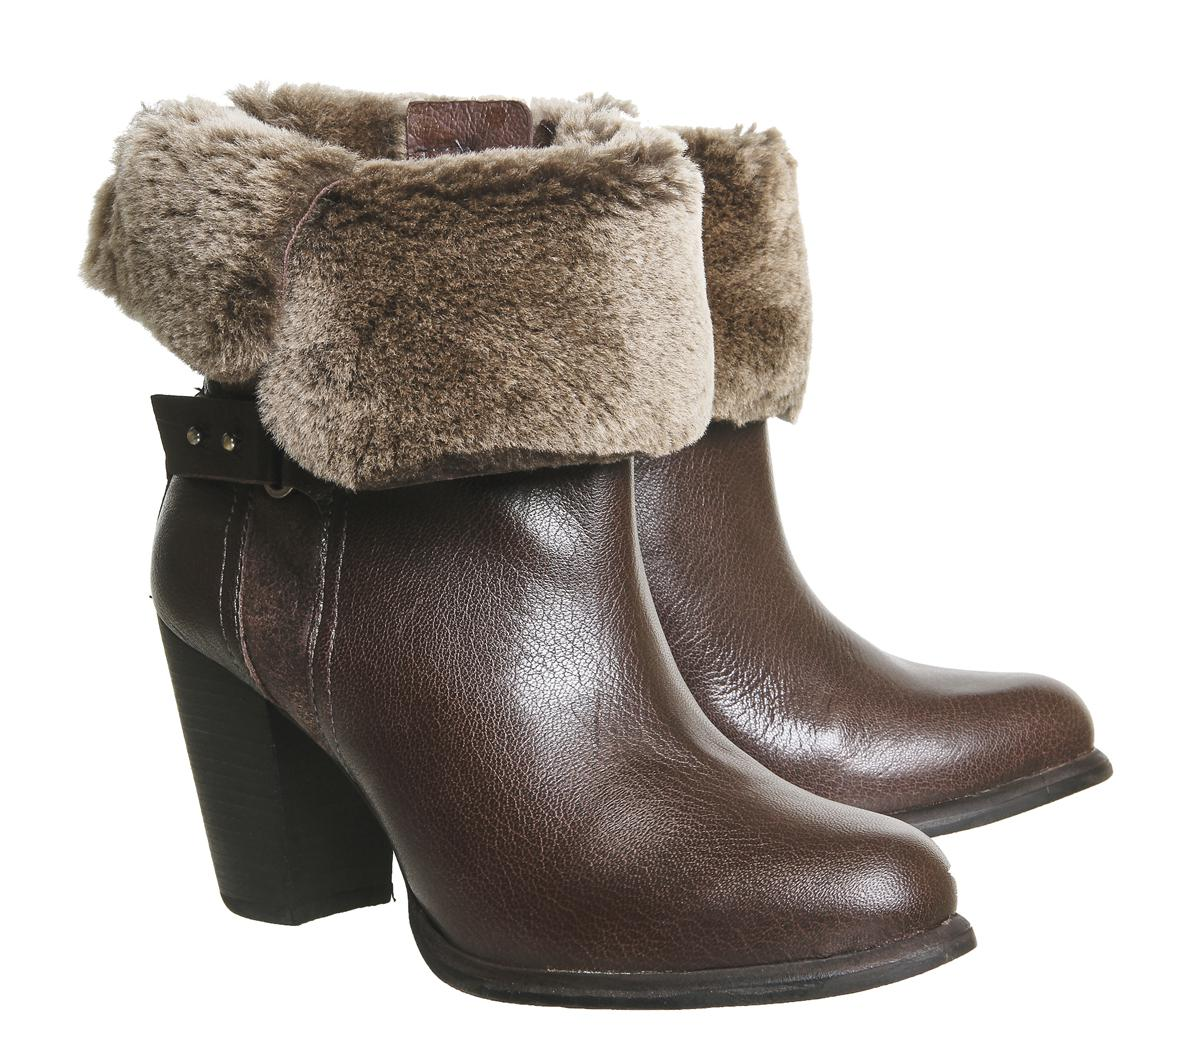 28c91d58449 Lyst - UGG Jayne Heeled Boots in Natural